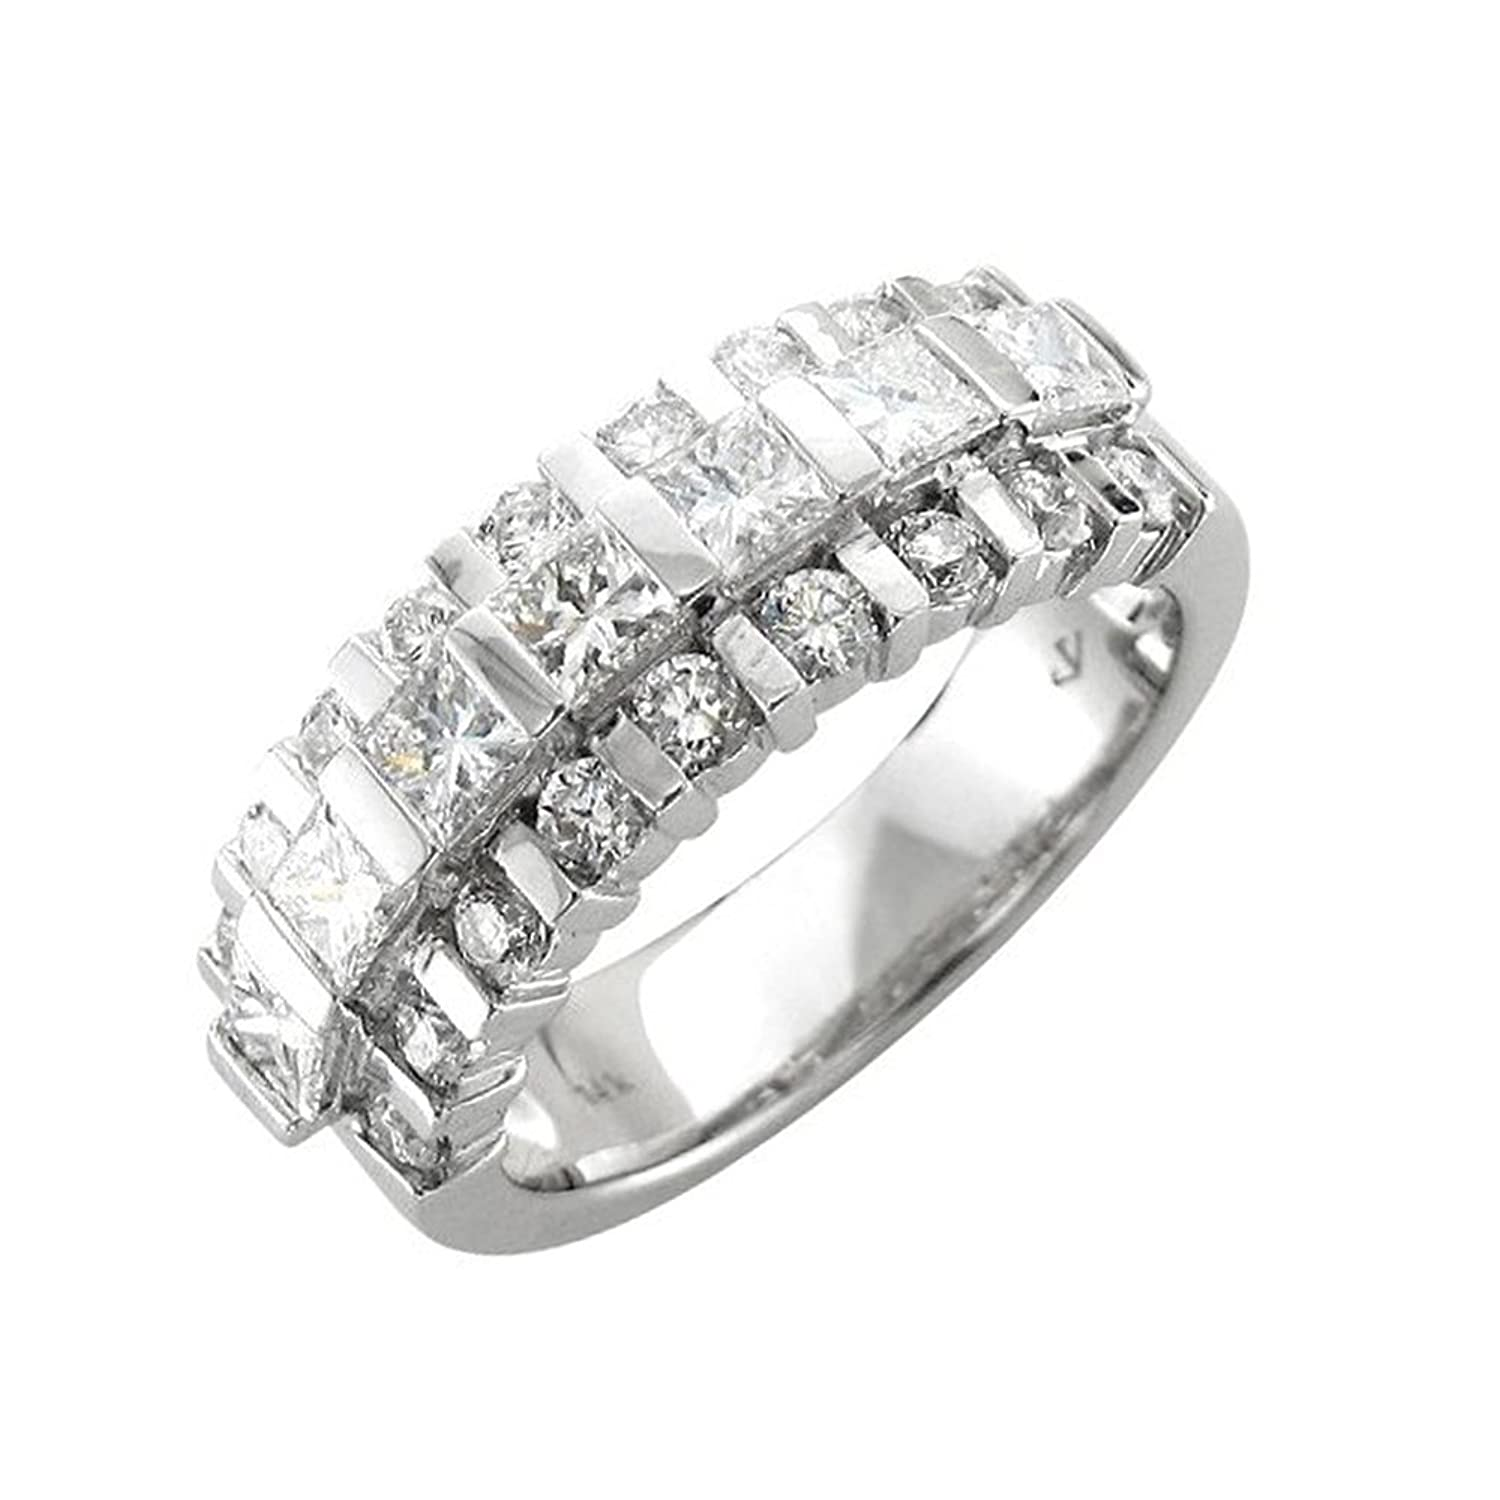 14k White Gold Round and Princess-Cut Diamond Ring Band, Size 7.25 (1 3/4 Carat)